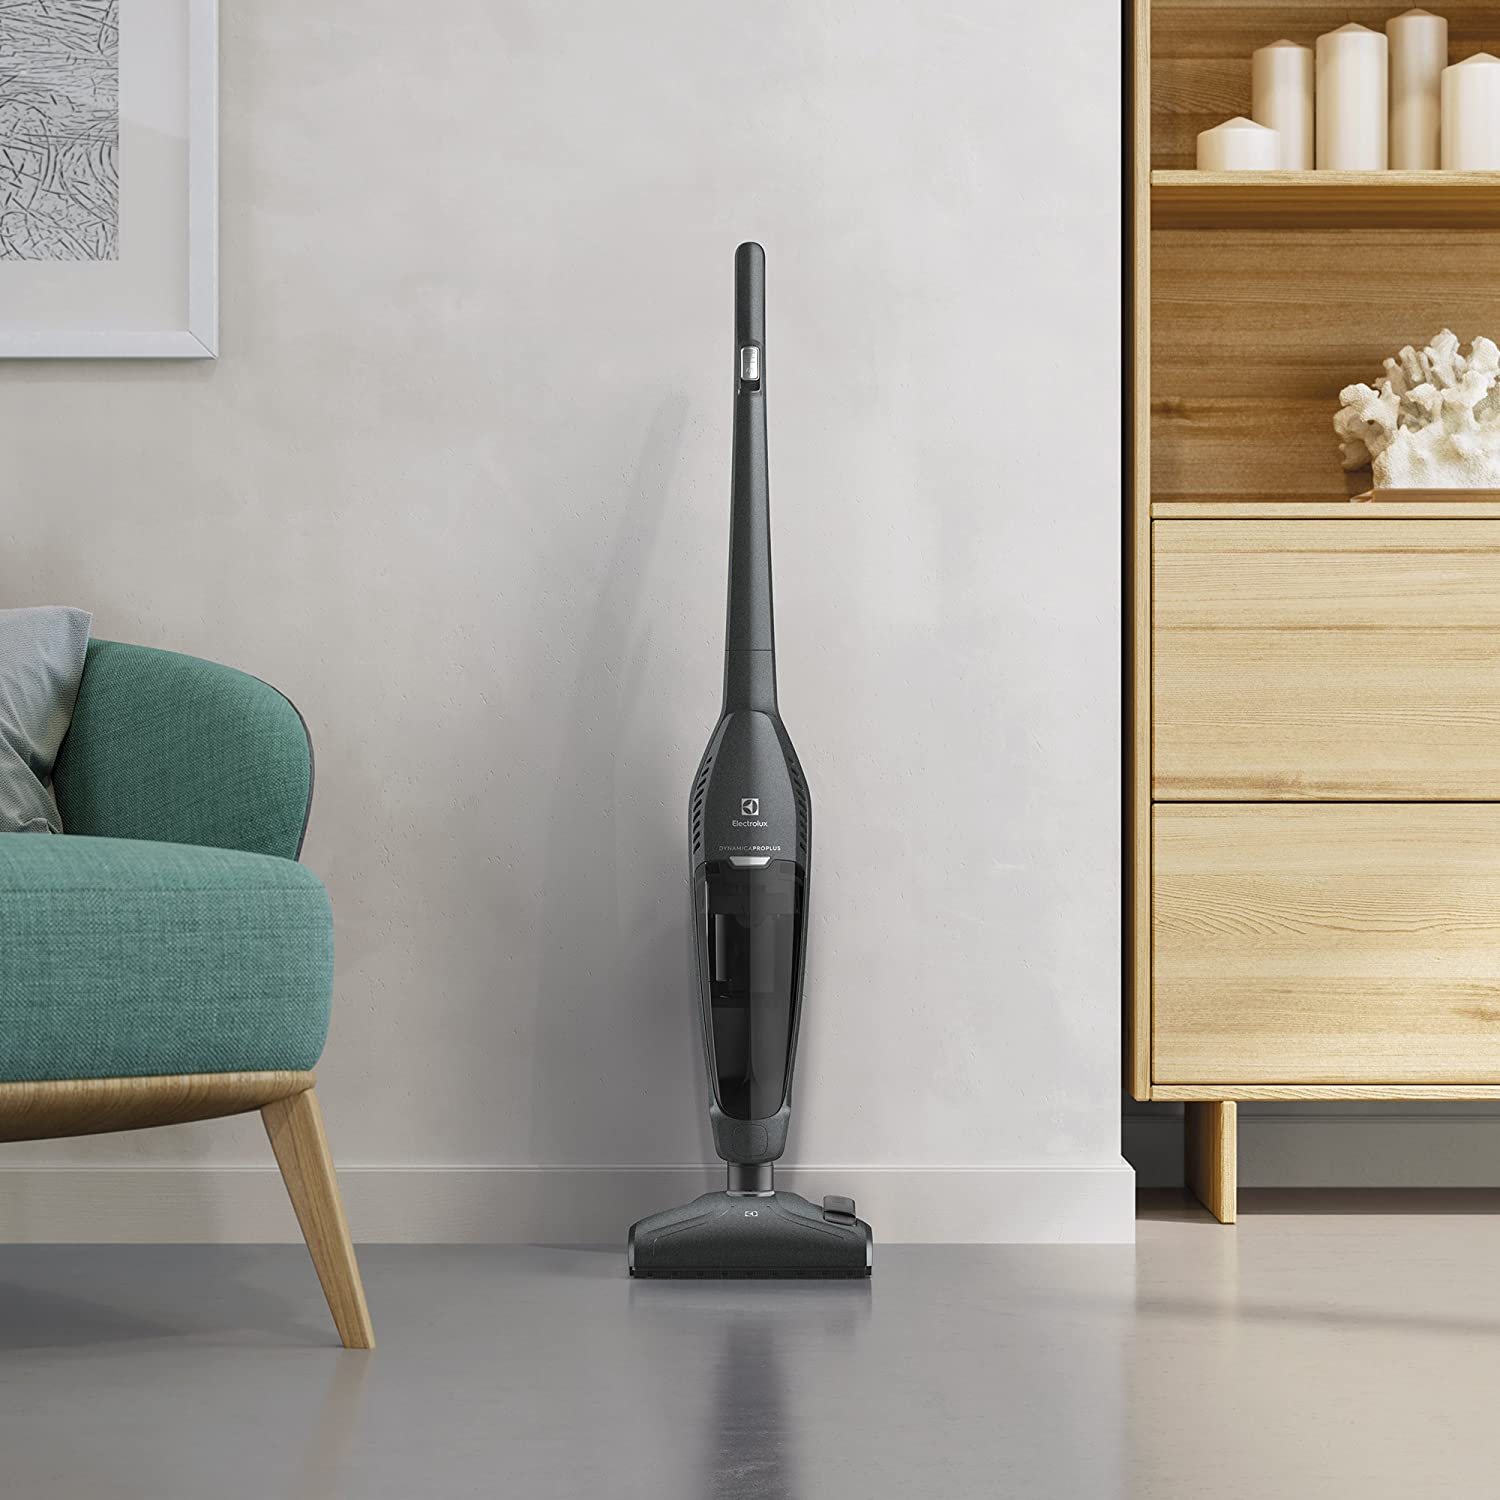 Electrolux Balai aspirateur sans sac, 550 W Light Grey Metallic Gris